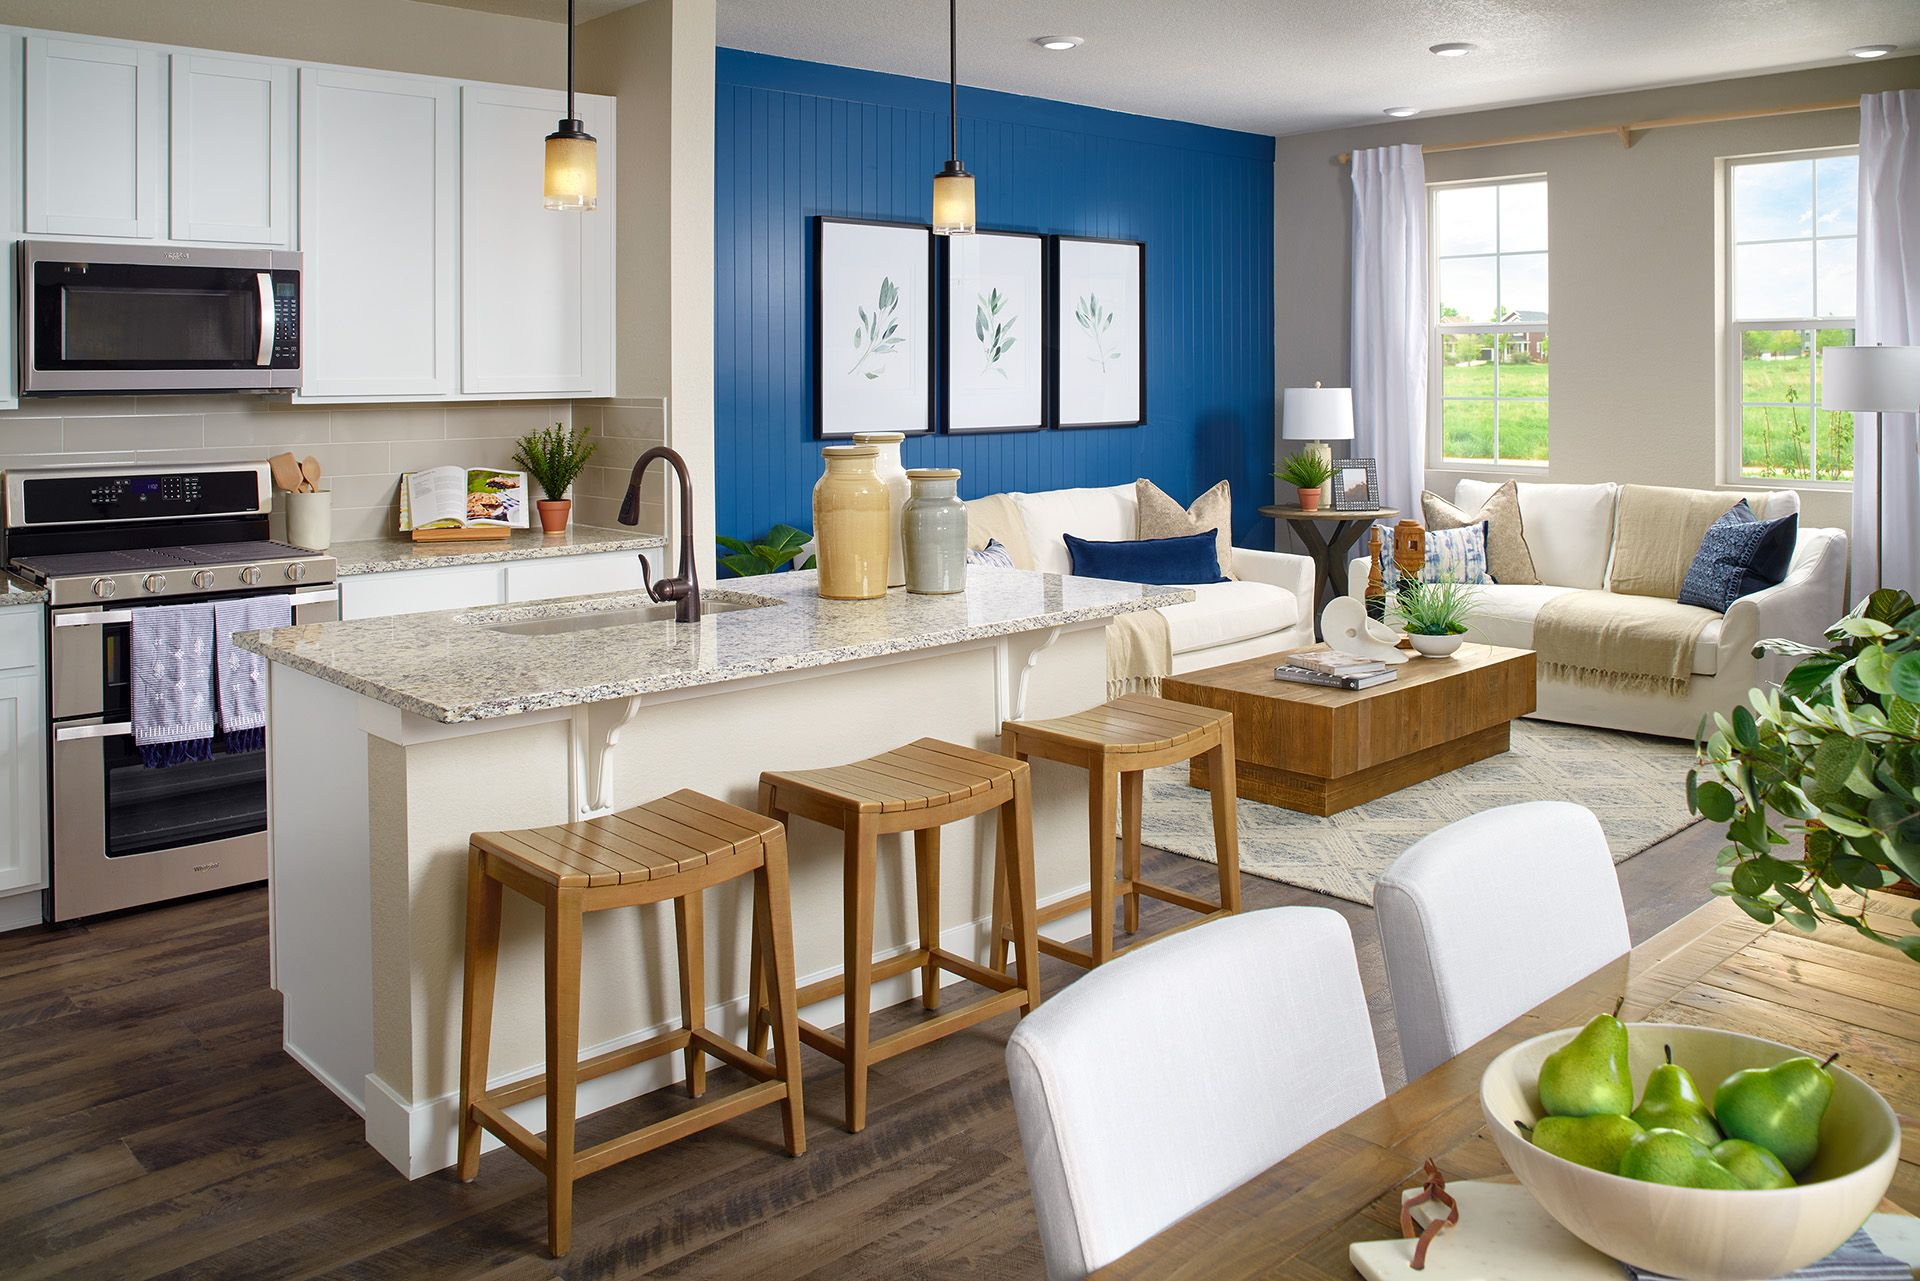 Kitchen featured in the Residence 602 By Century Communities in Denver, CO